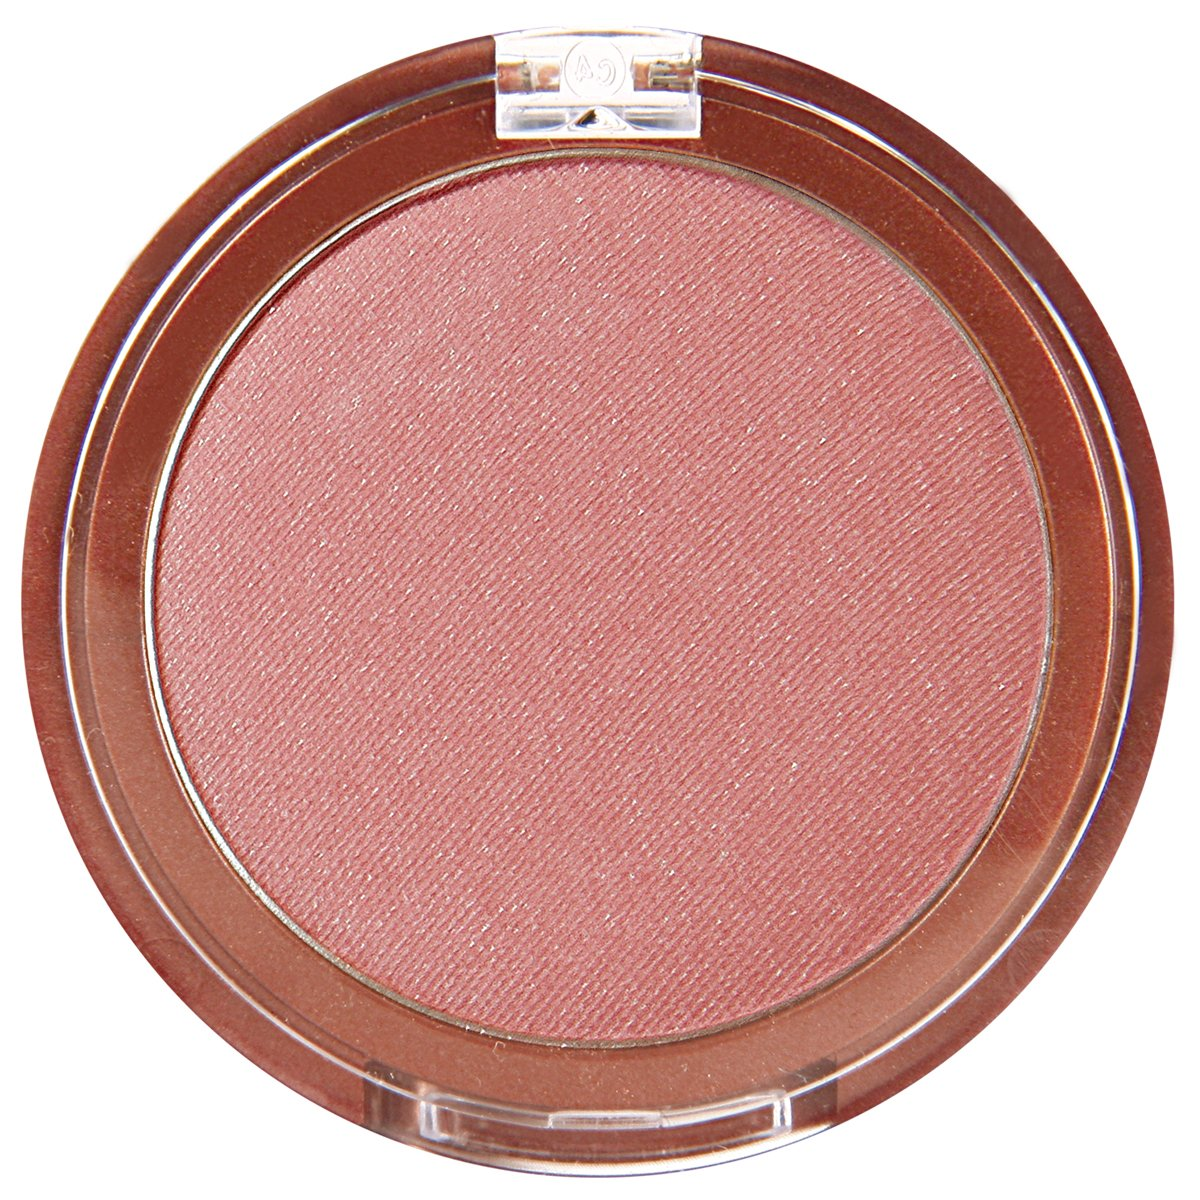 MINERAL FUSION Mineral fusion makeup blush creation, 0.10 oz, 0.10 Ounce by Mineral Fusion